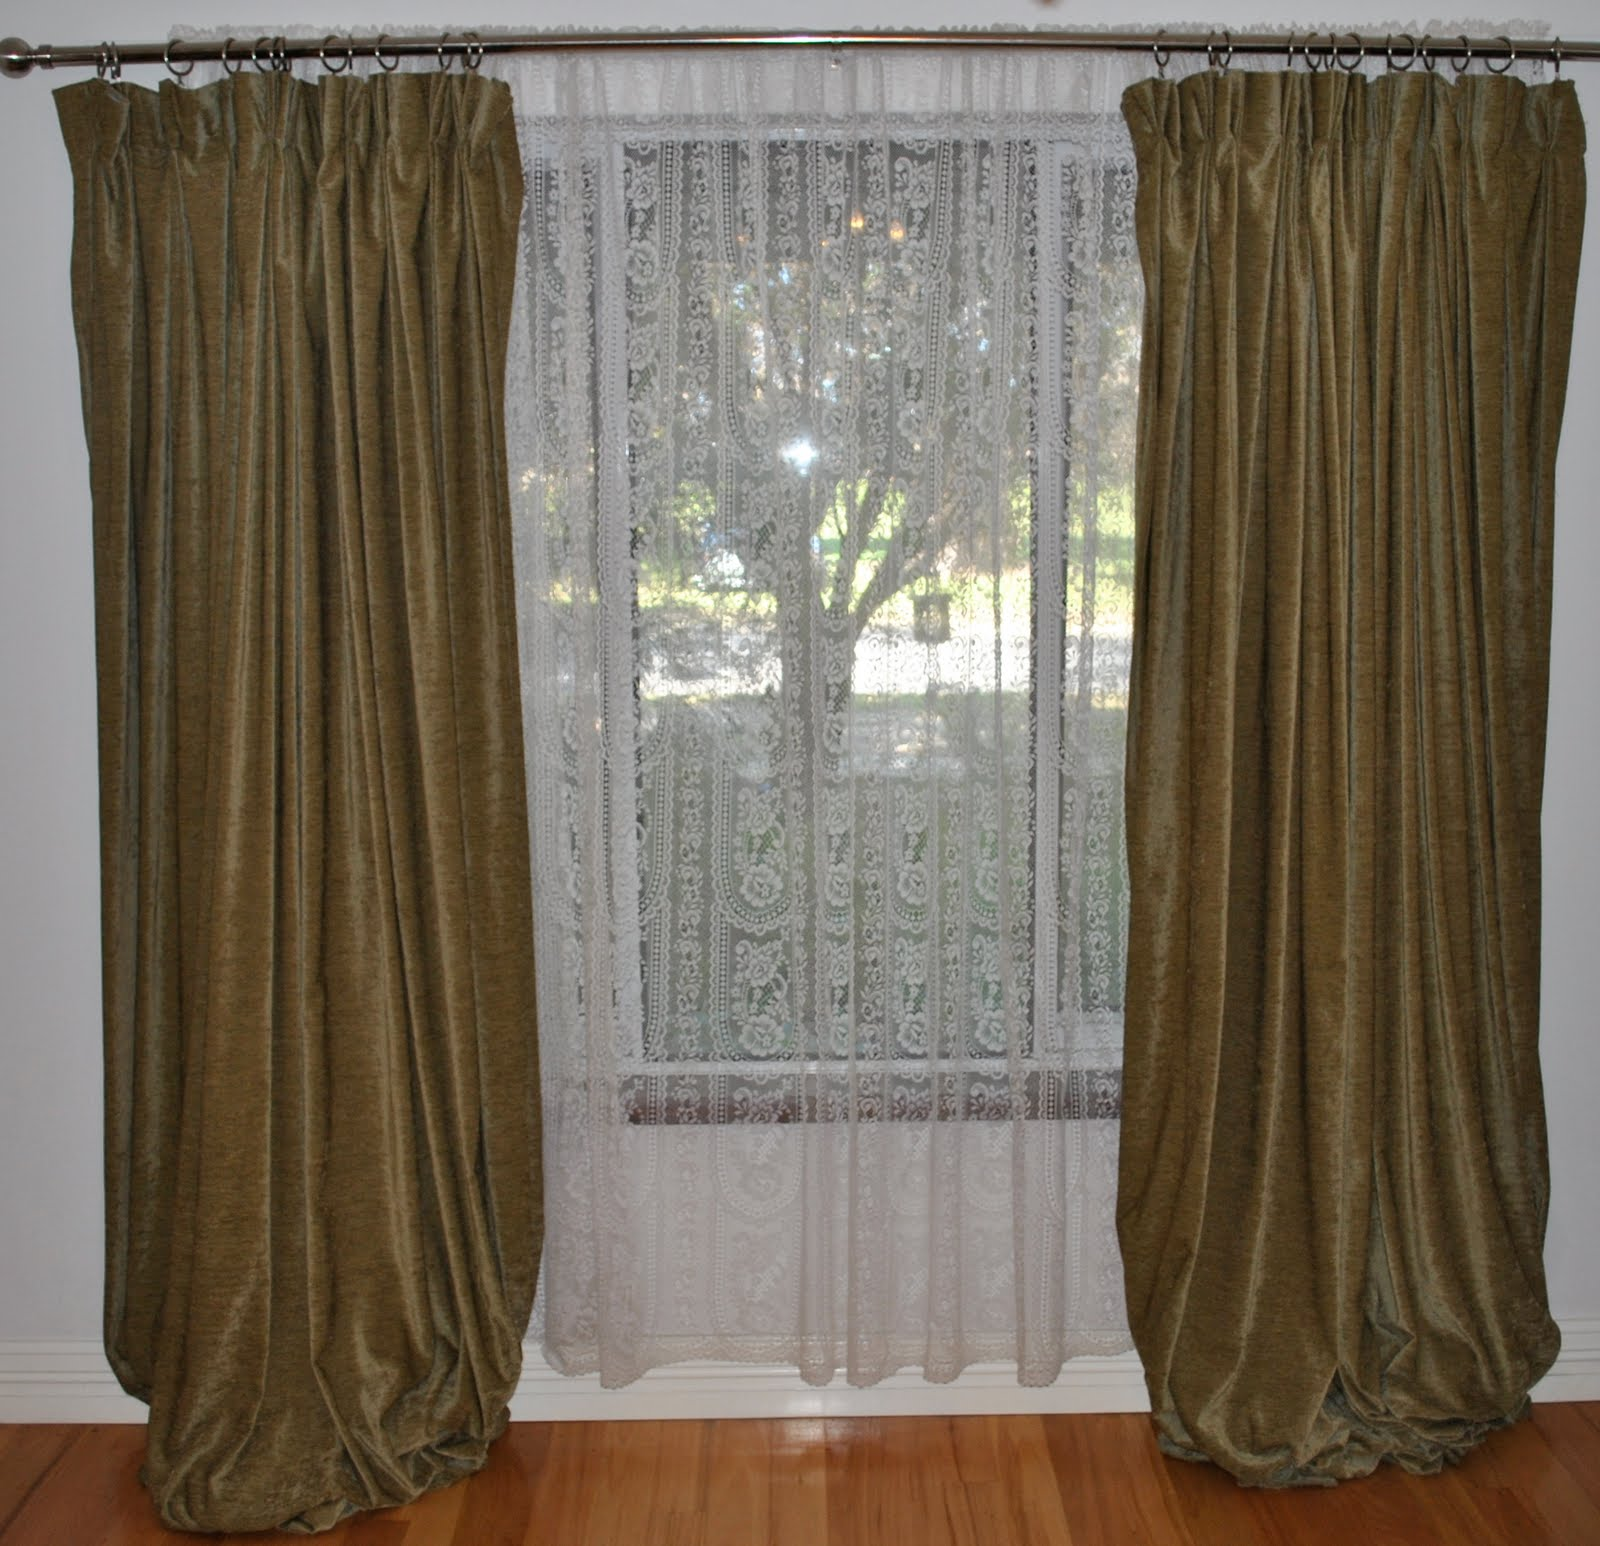 Bedroom Curtains: curtain designs for bedroom